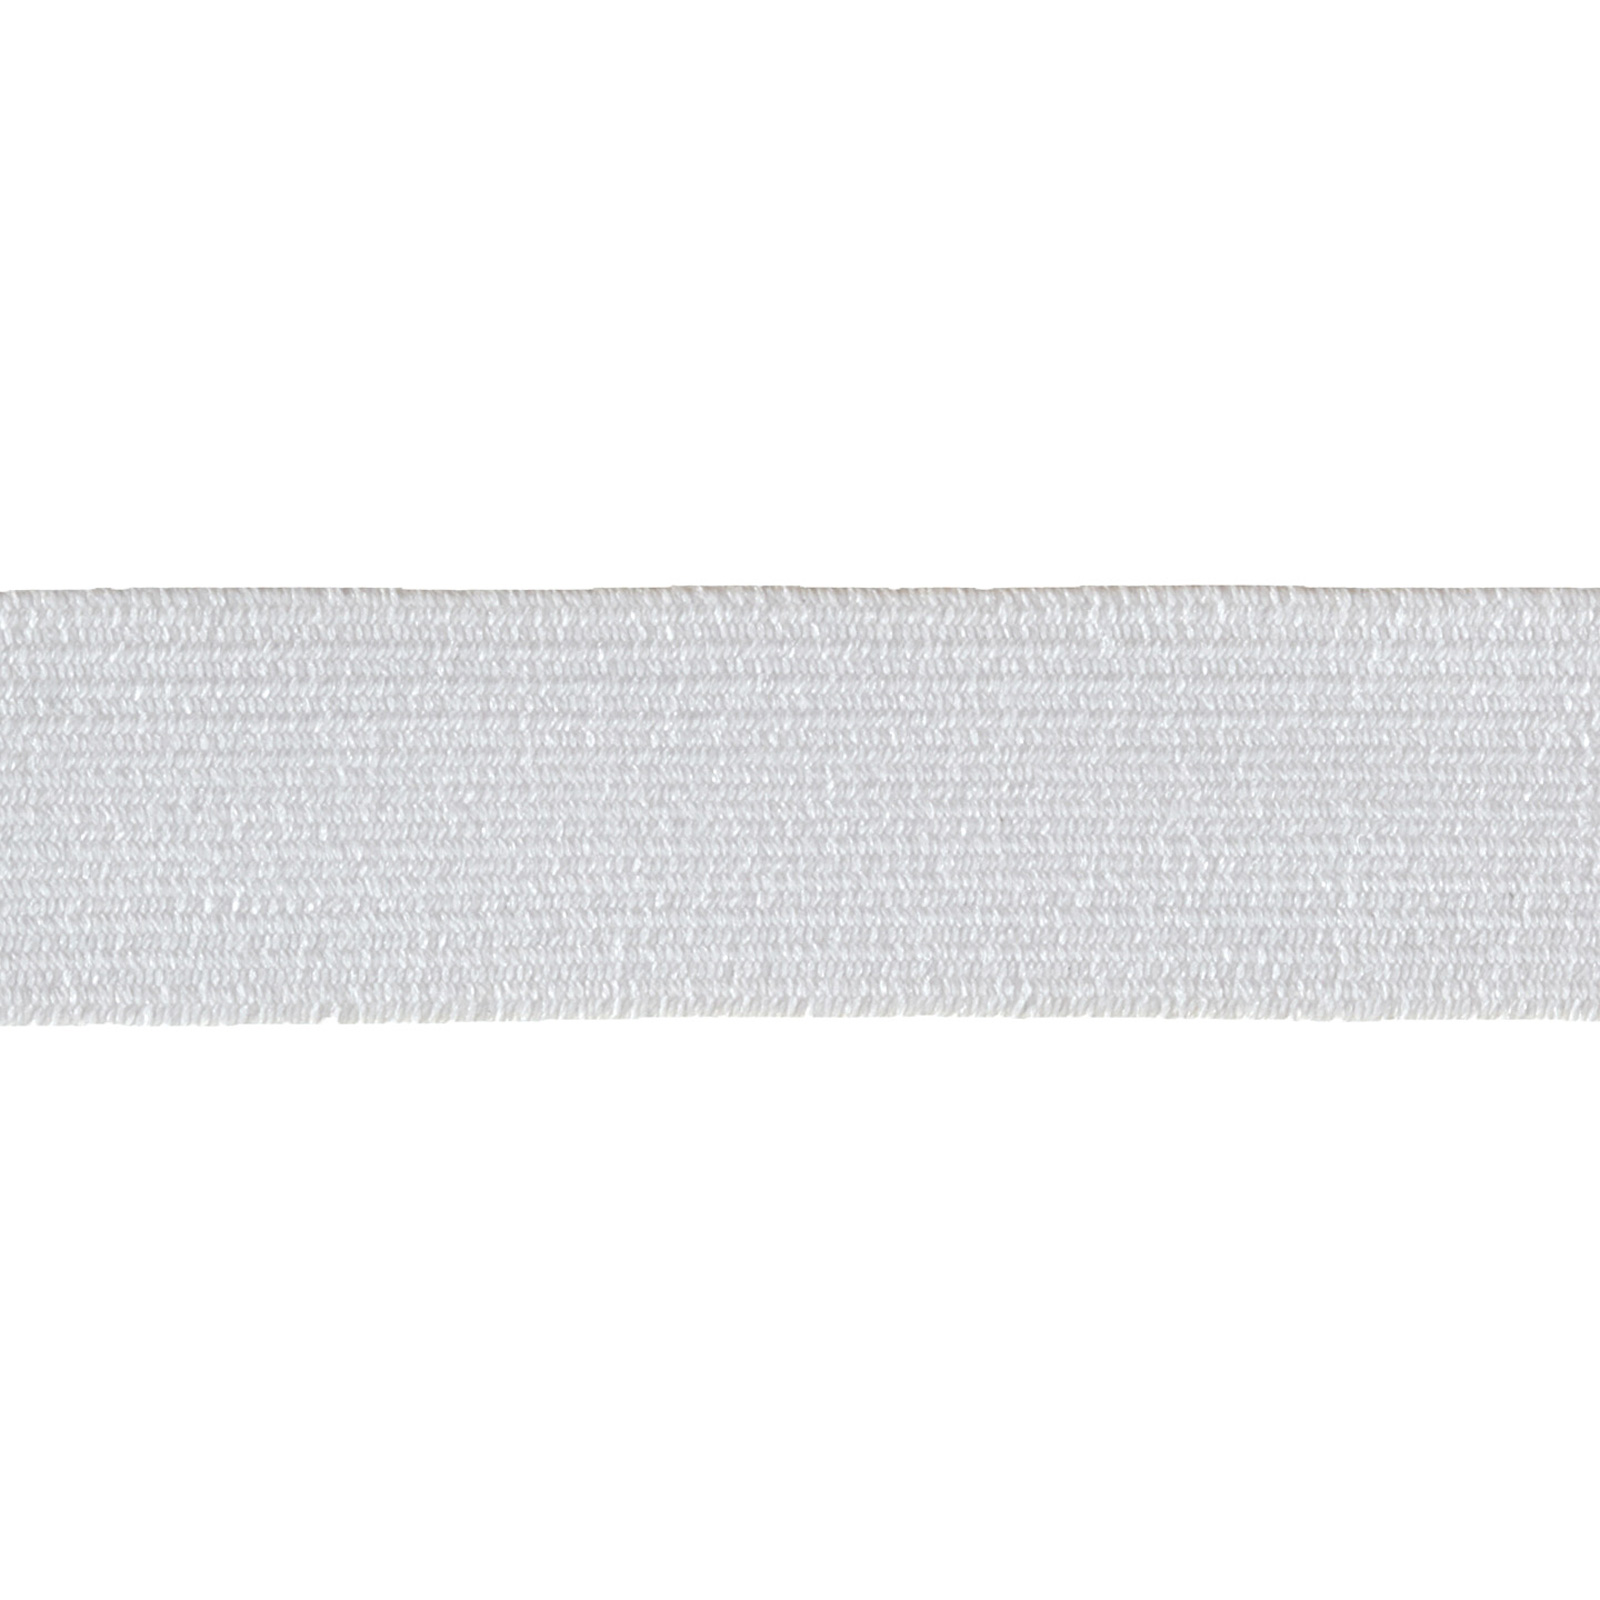 3/4'' Braided Elastic White by Notions Marketing in USA